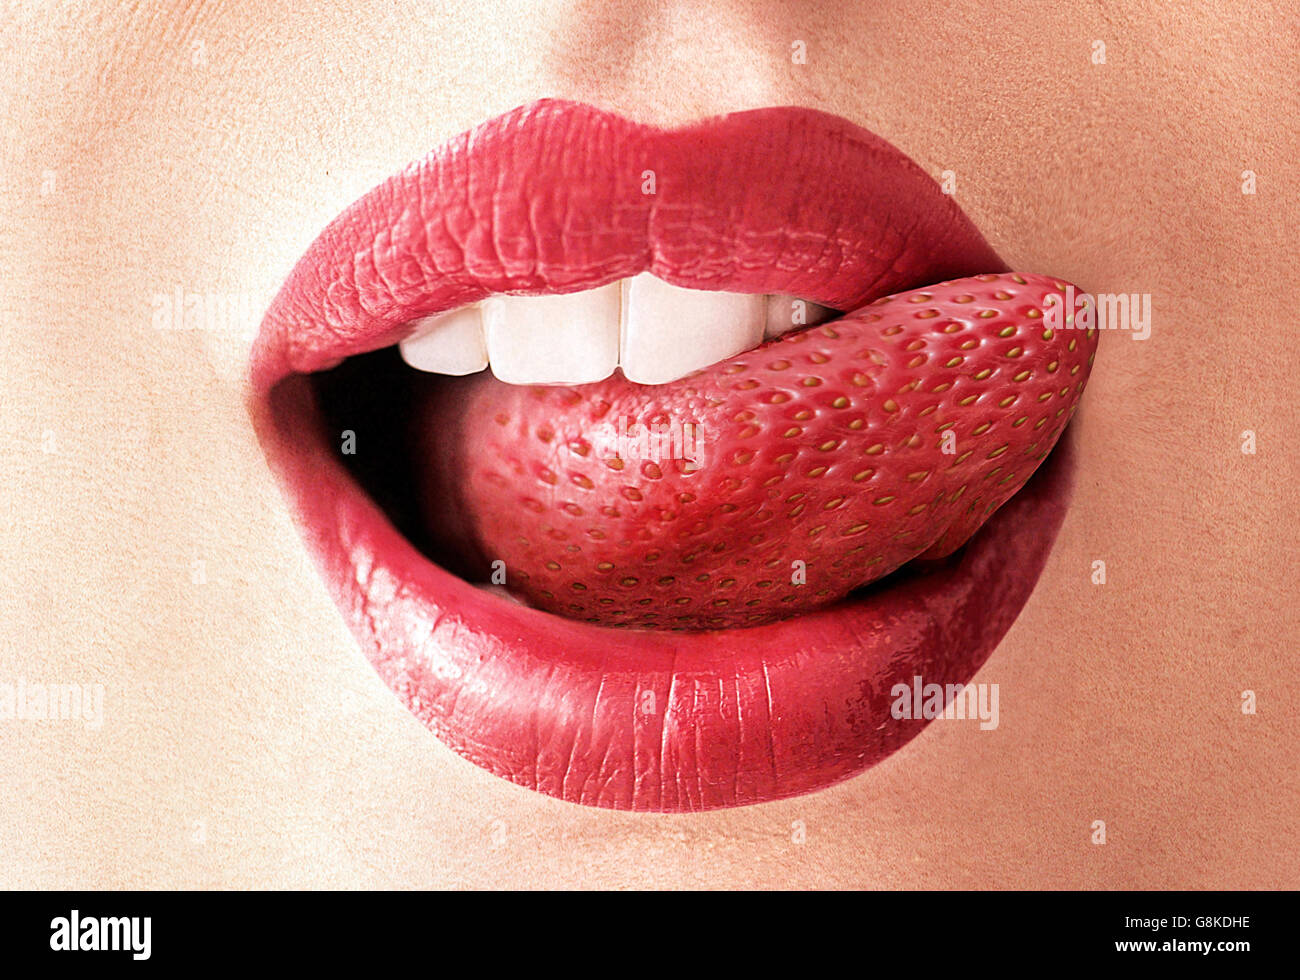 Closeup image of a red strawberry tongue - Stock Image